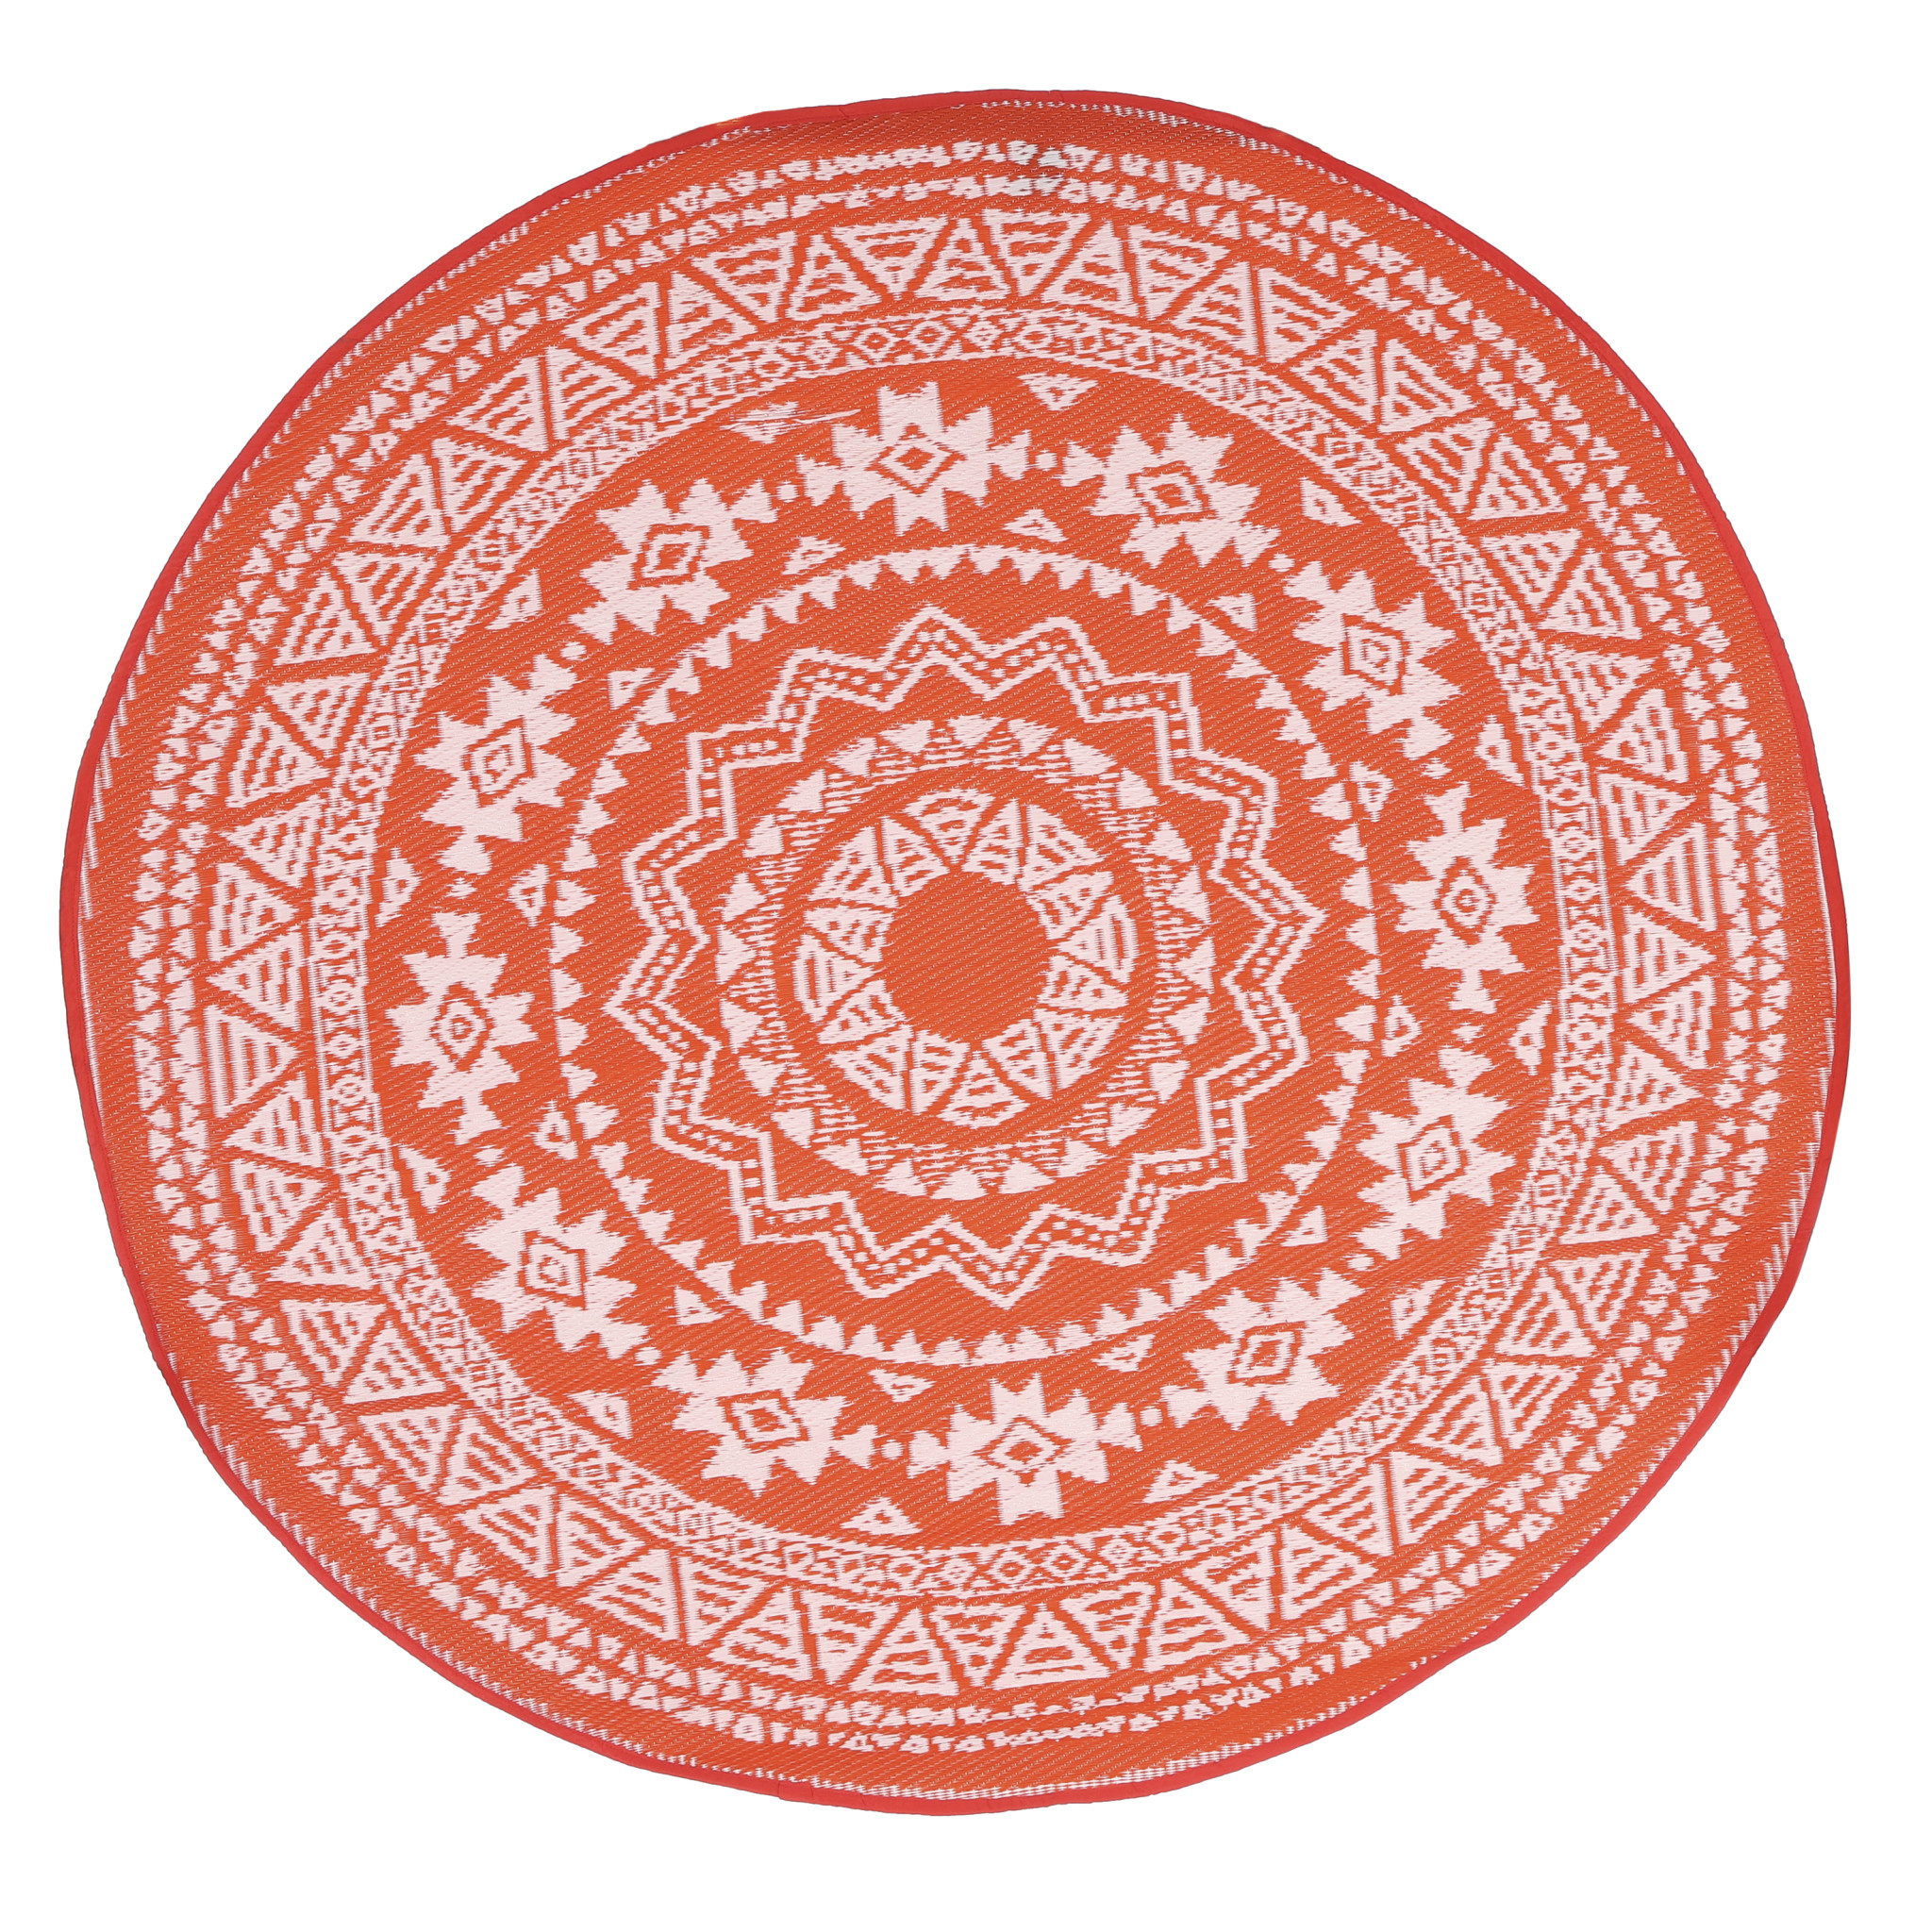 Mica Debby Rug Round Recycled Plastic